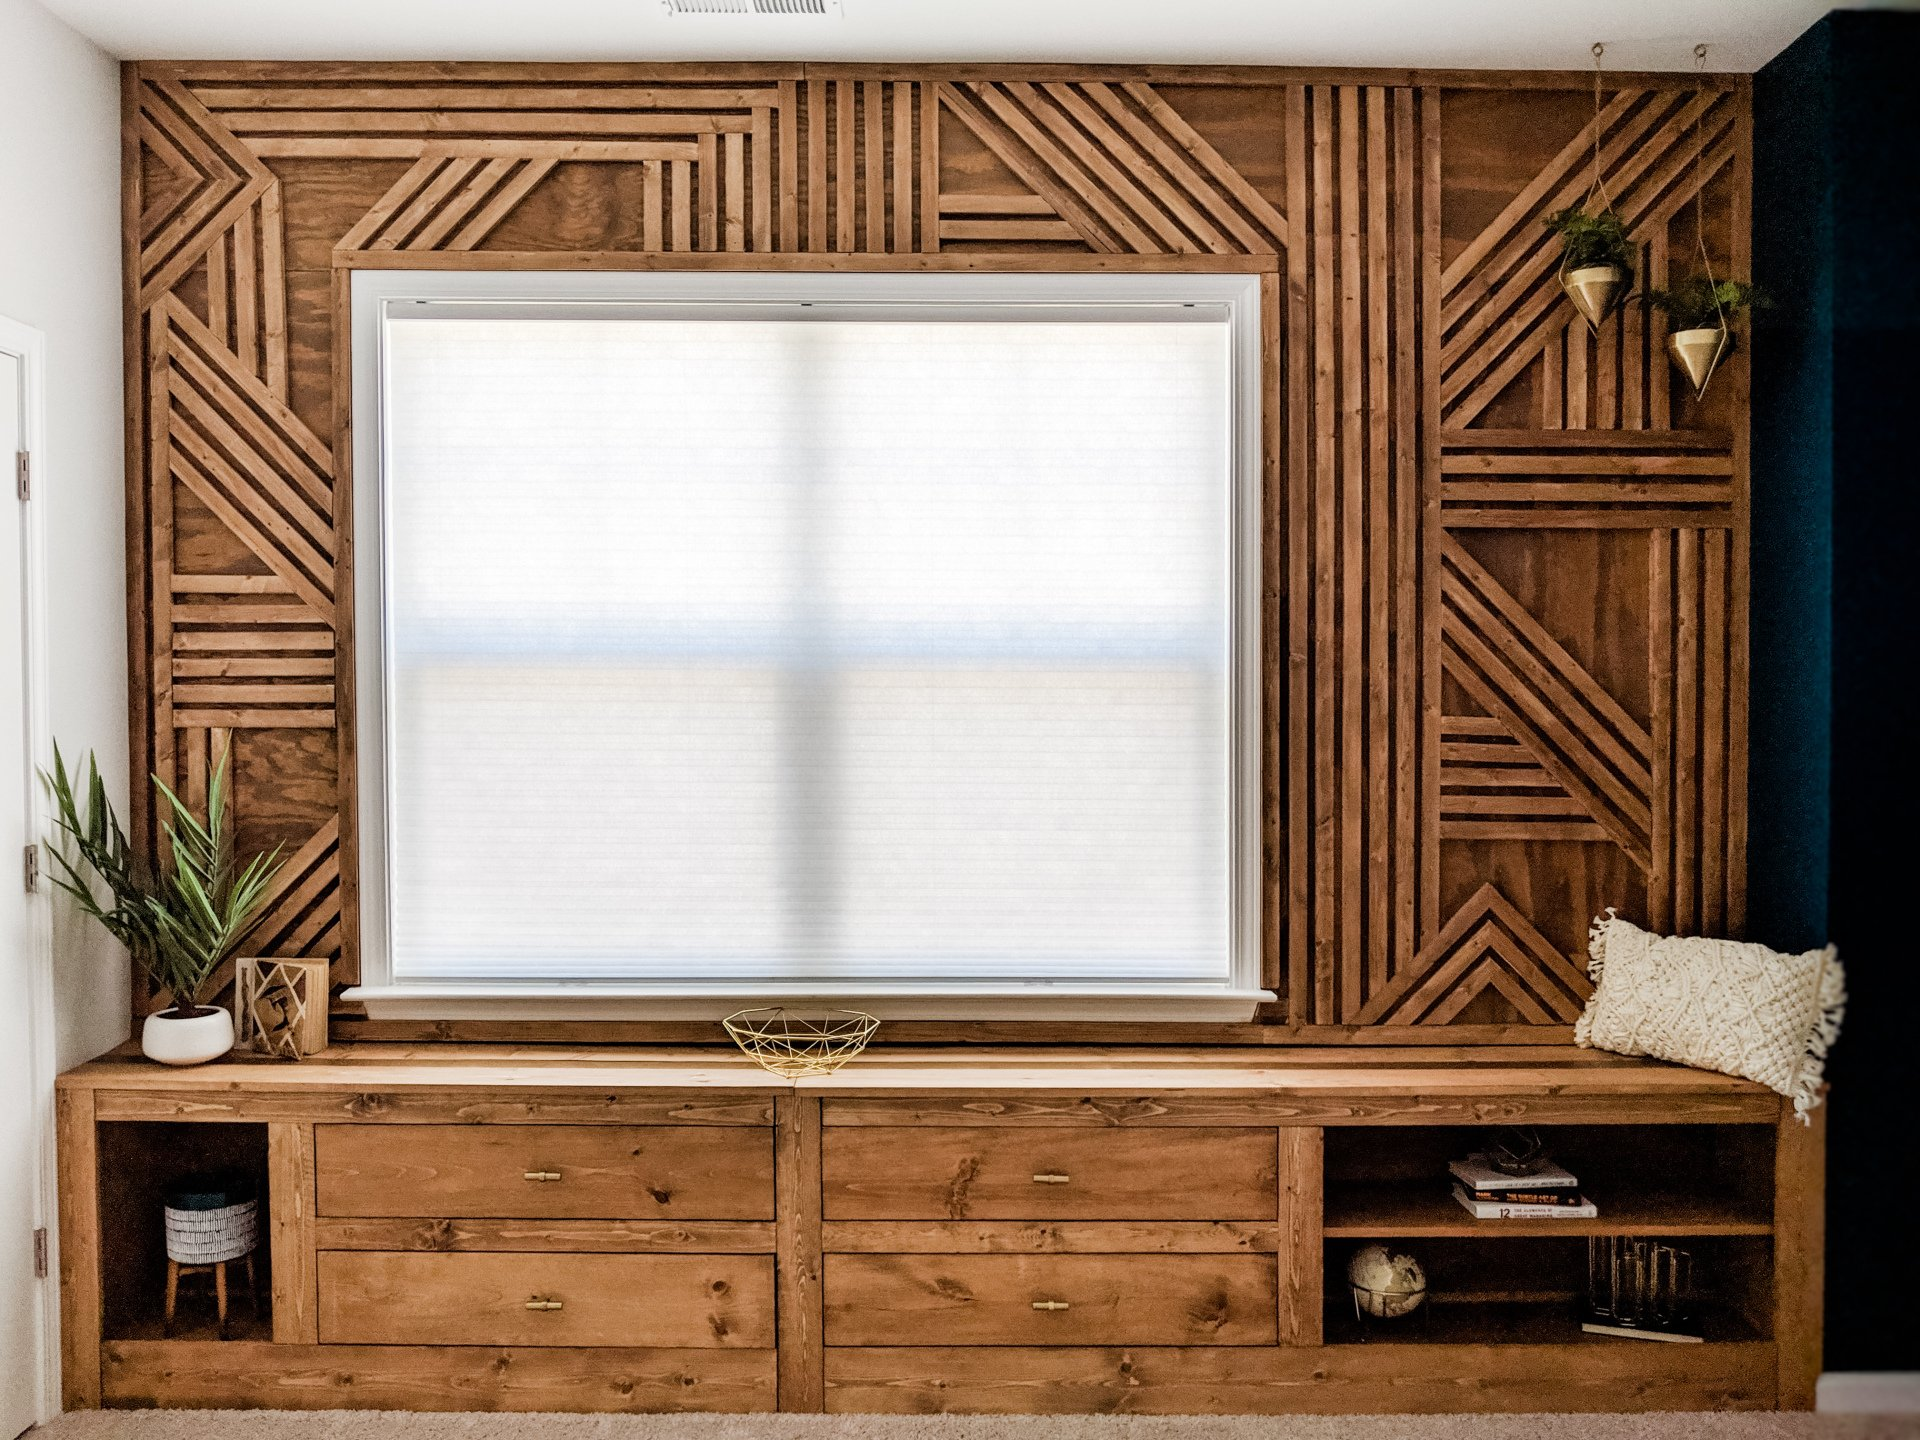 How To Make A Feature Wall Diy Geometric Wood Accent Wall